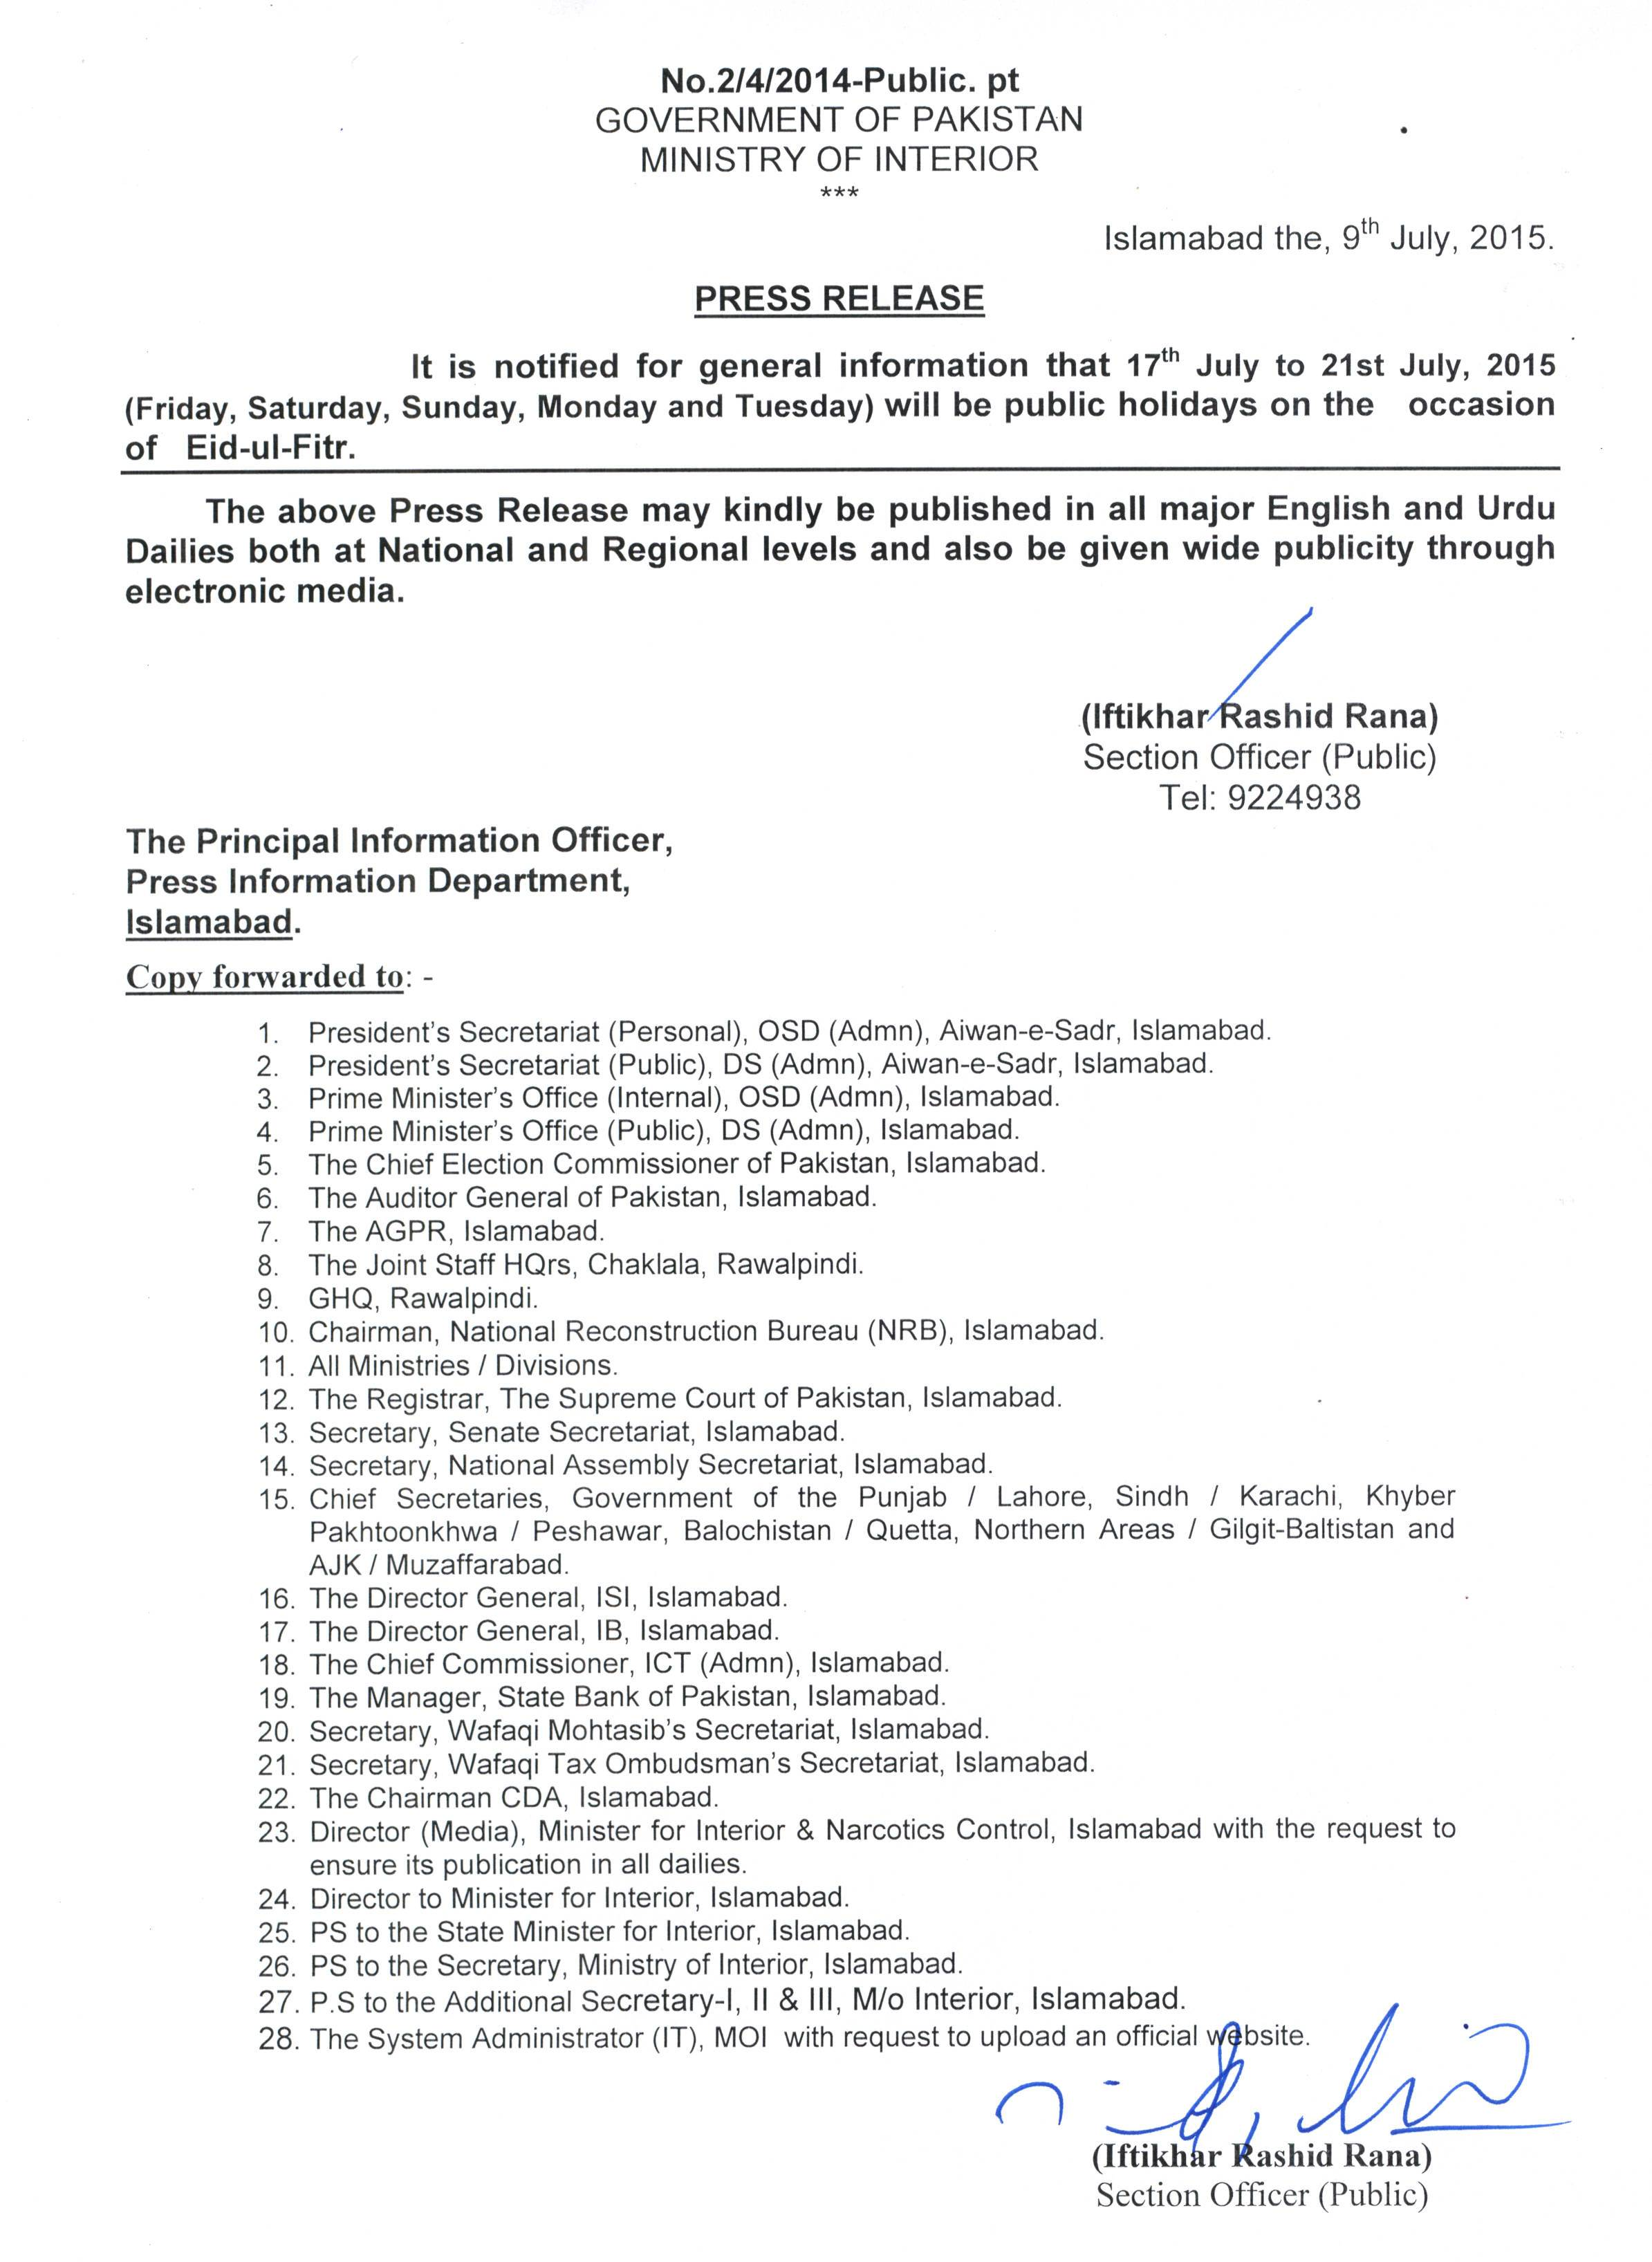 Notification of Eid-ul-Fitr Holidays 2015